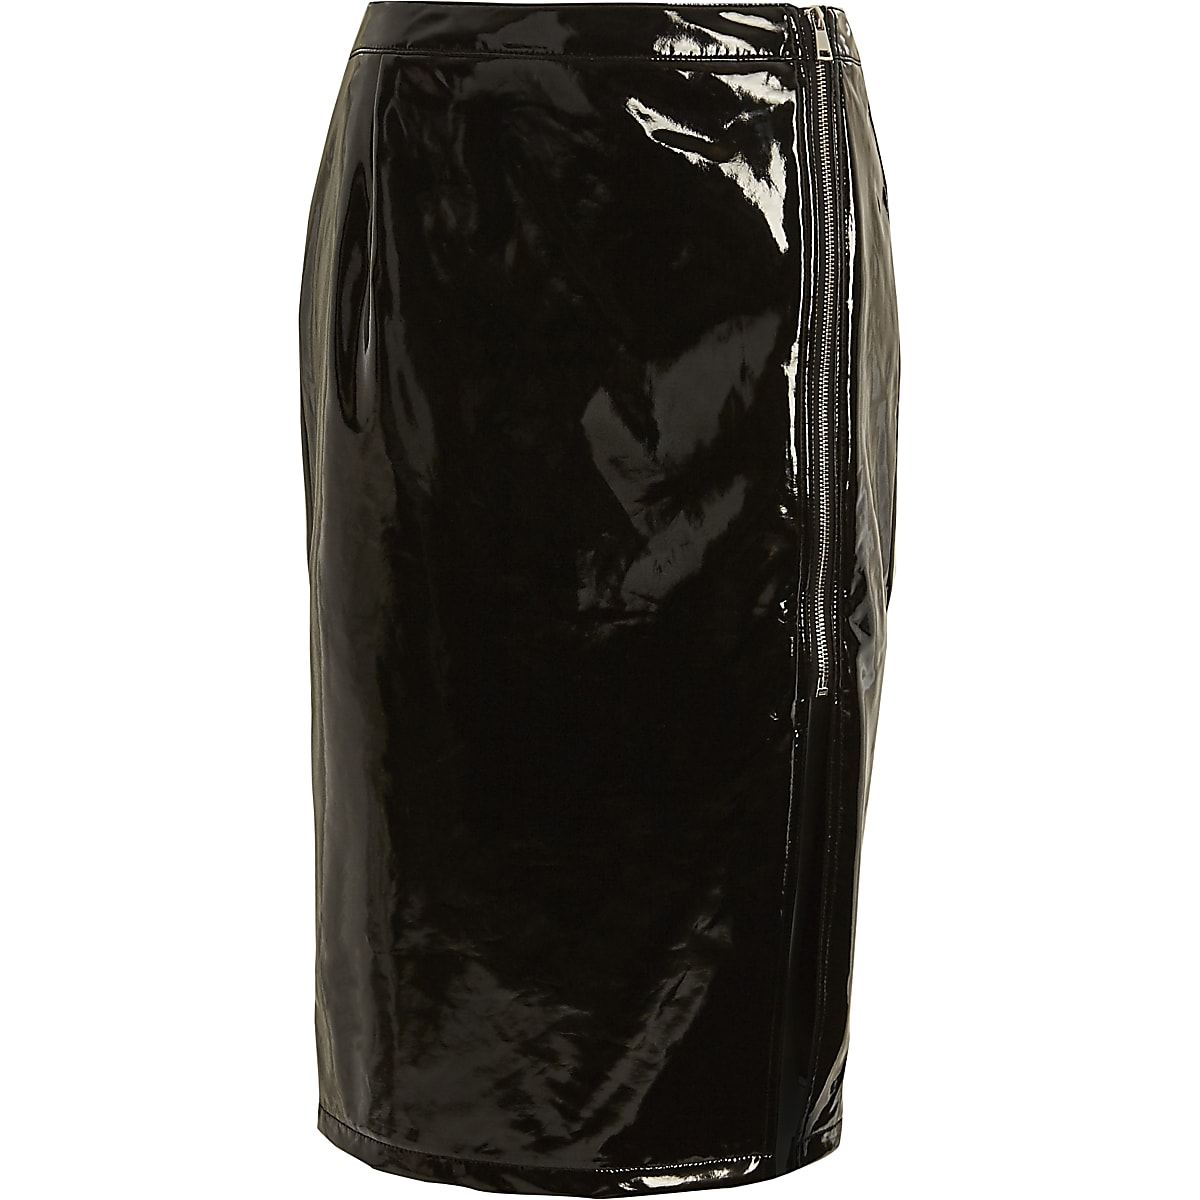 Black vinyl front split pencil skirt